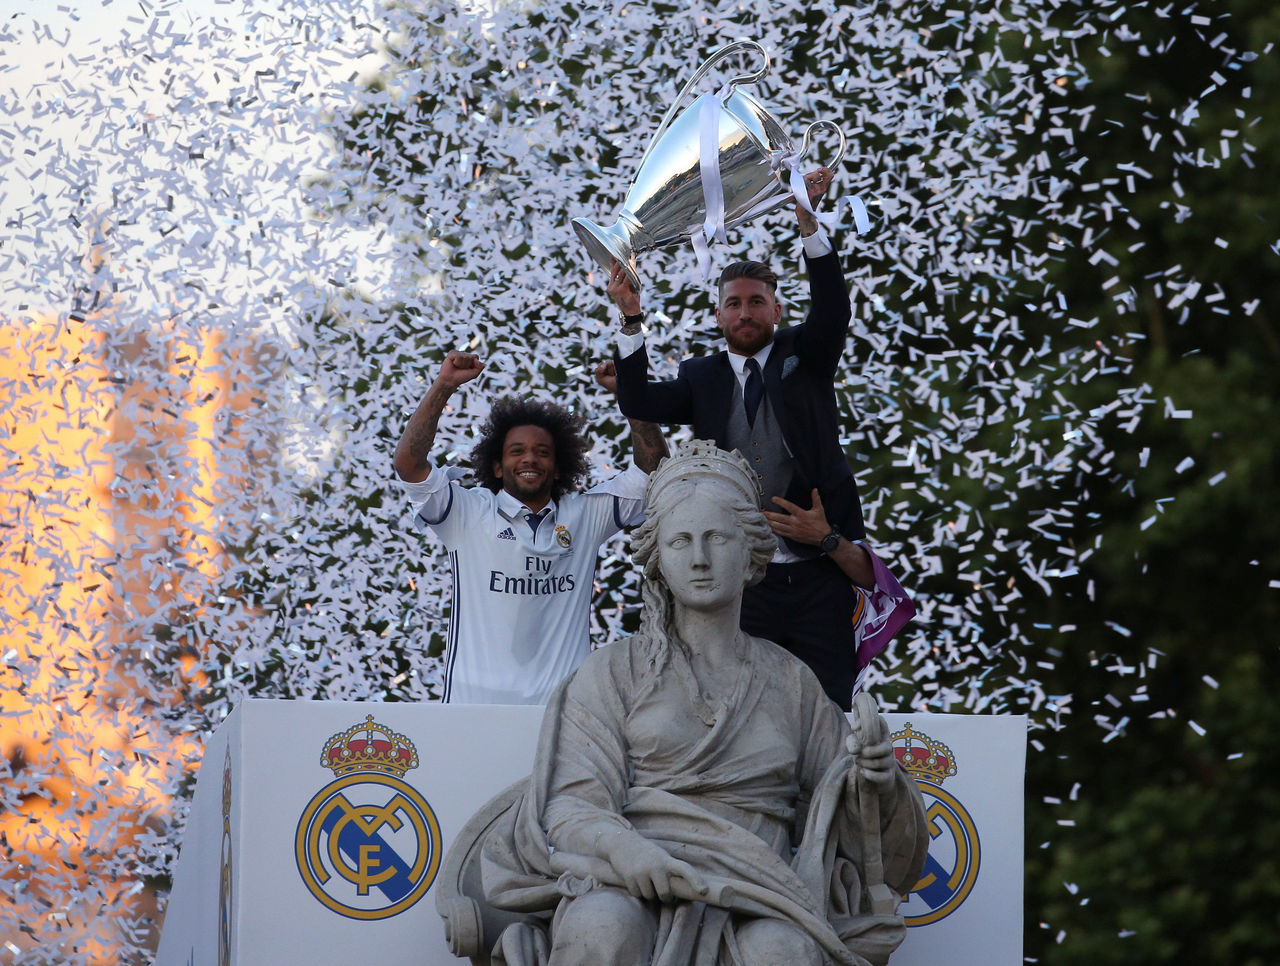 Cropped 2017 06 04t194339z 1725055255 rc1ed71d5200 rtrmadp 3 soccer champions final madrid celebrations